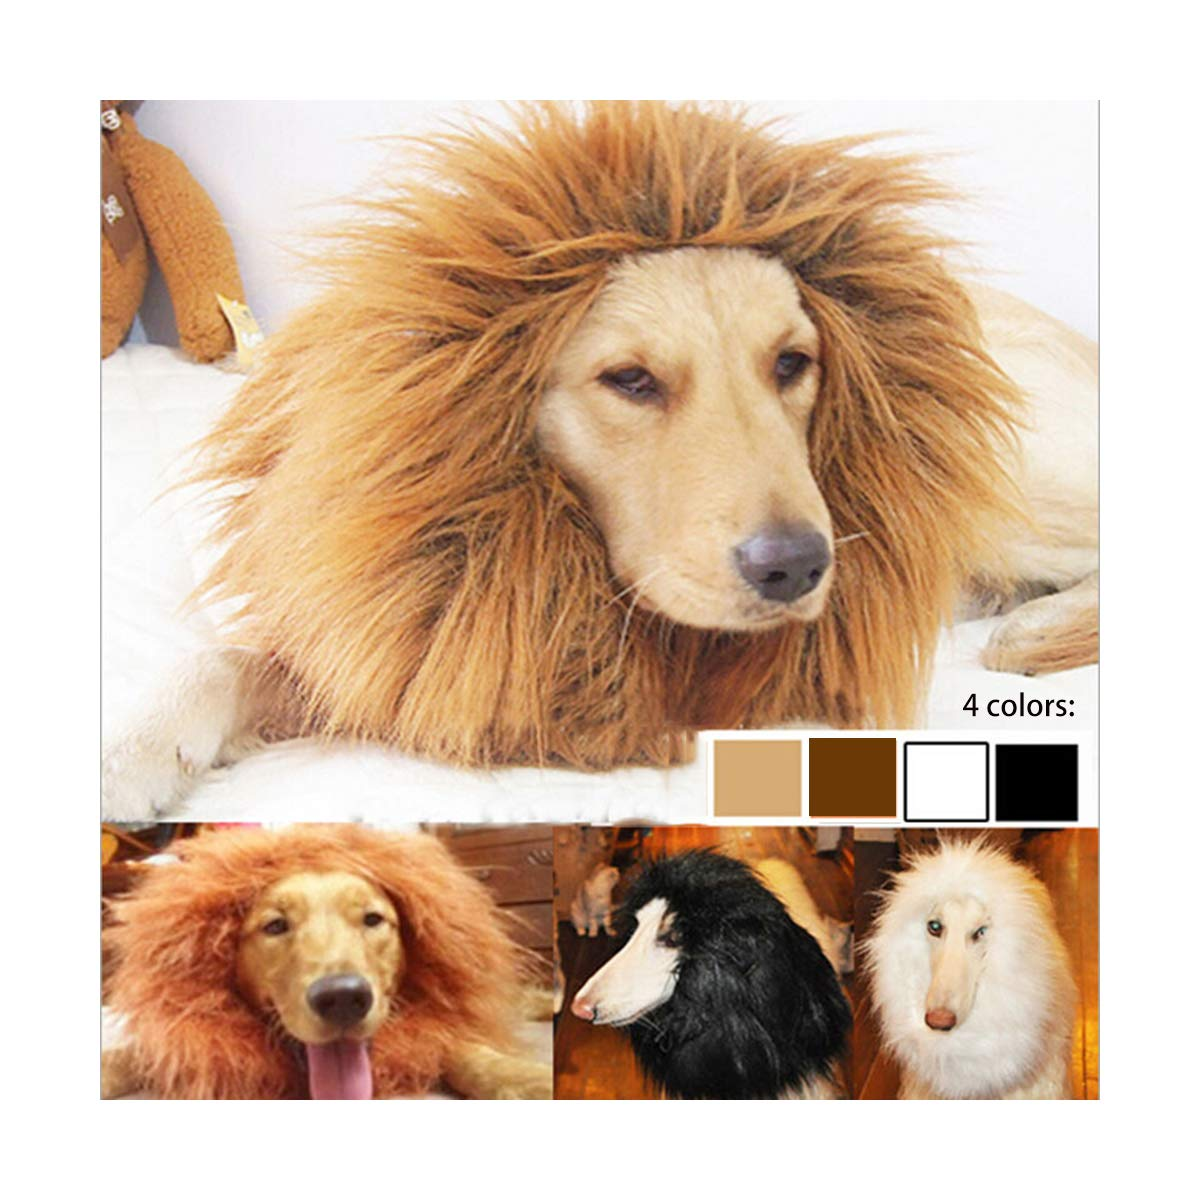 Qiao Niuniu Lion Mane for Dog Costume Lion Wig Large Pet Festival Party Fancy Hair Dog Clothes with Ears-Color Black xuanyun